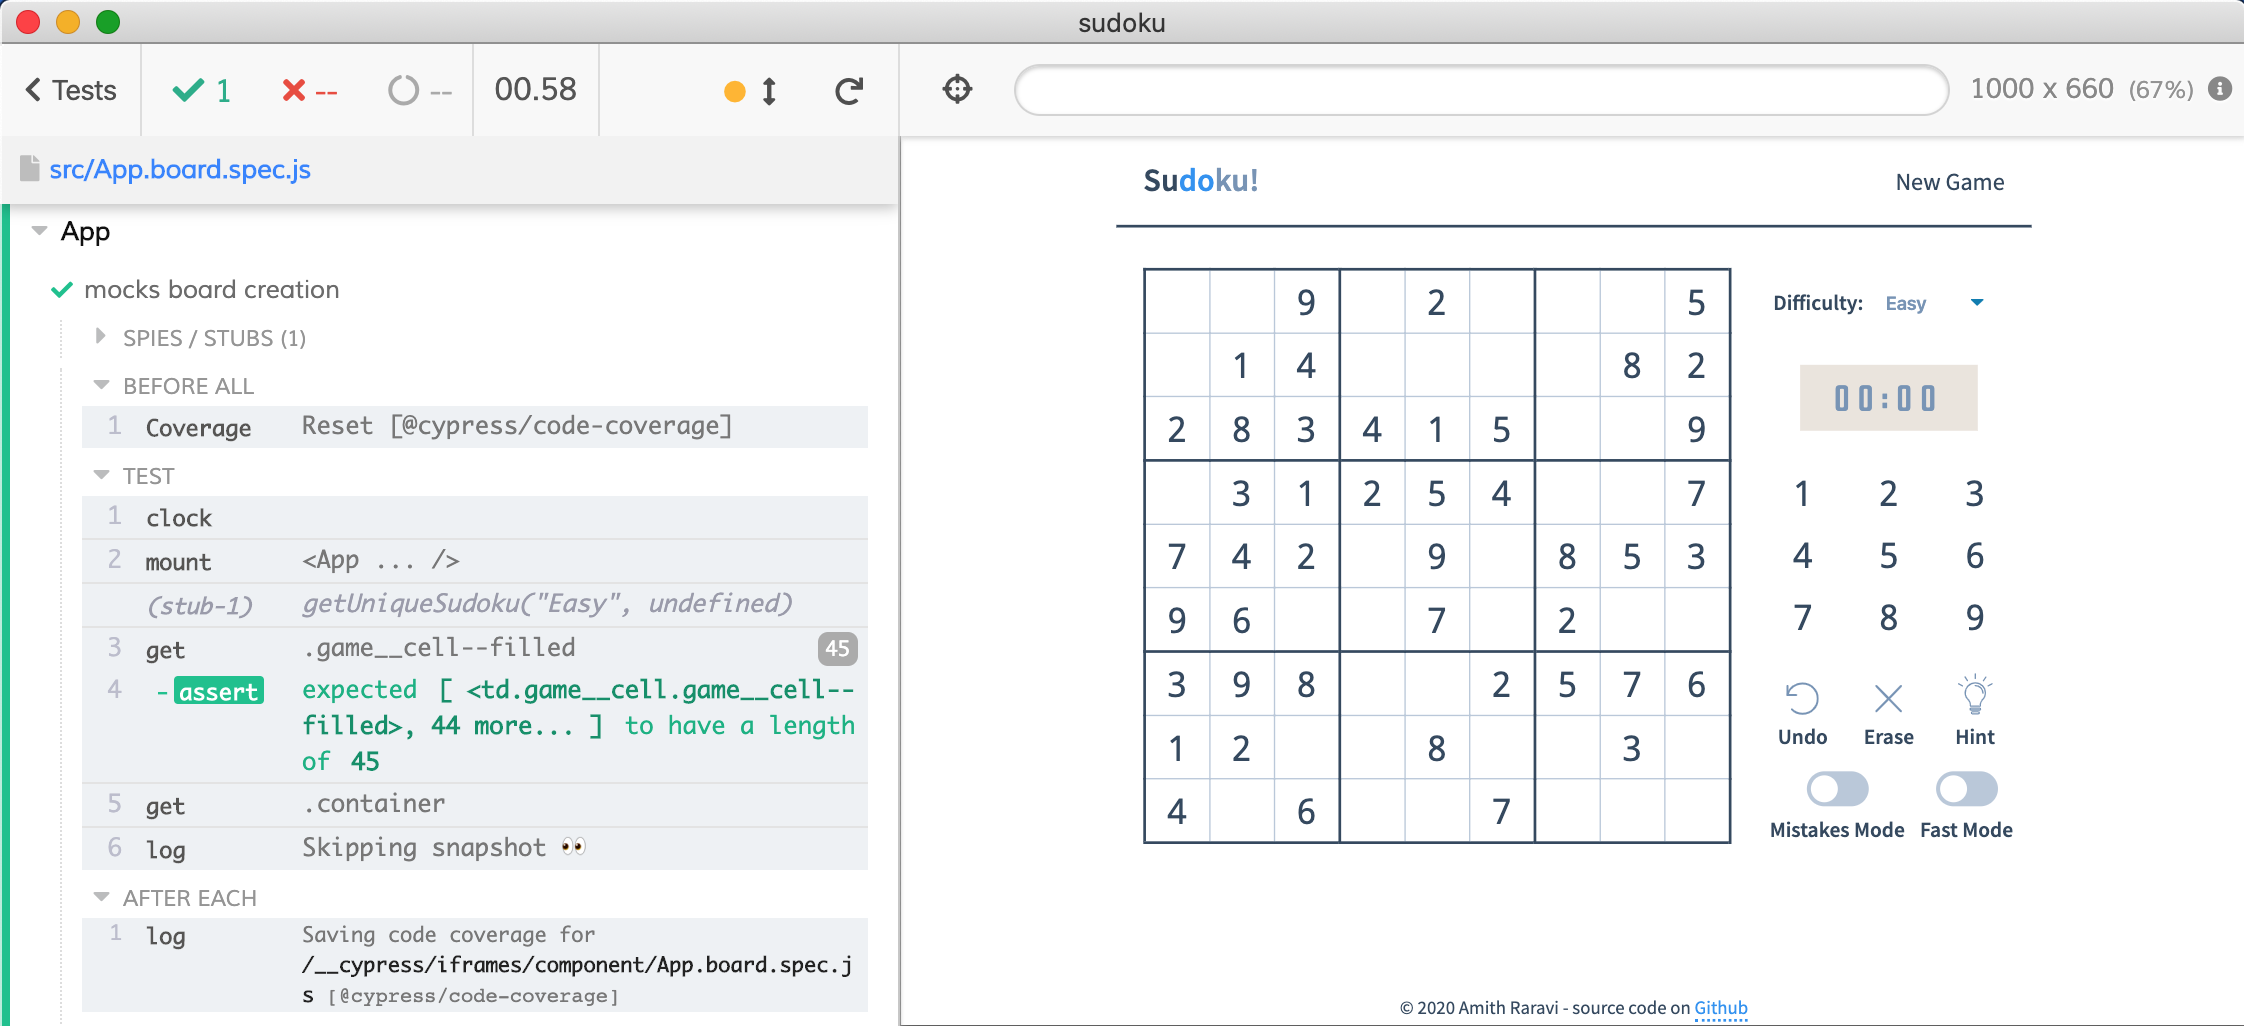 Mocked board creation produces the same Sudoku game